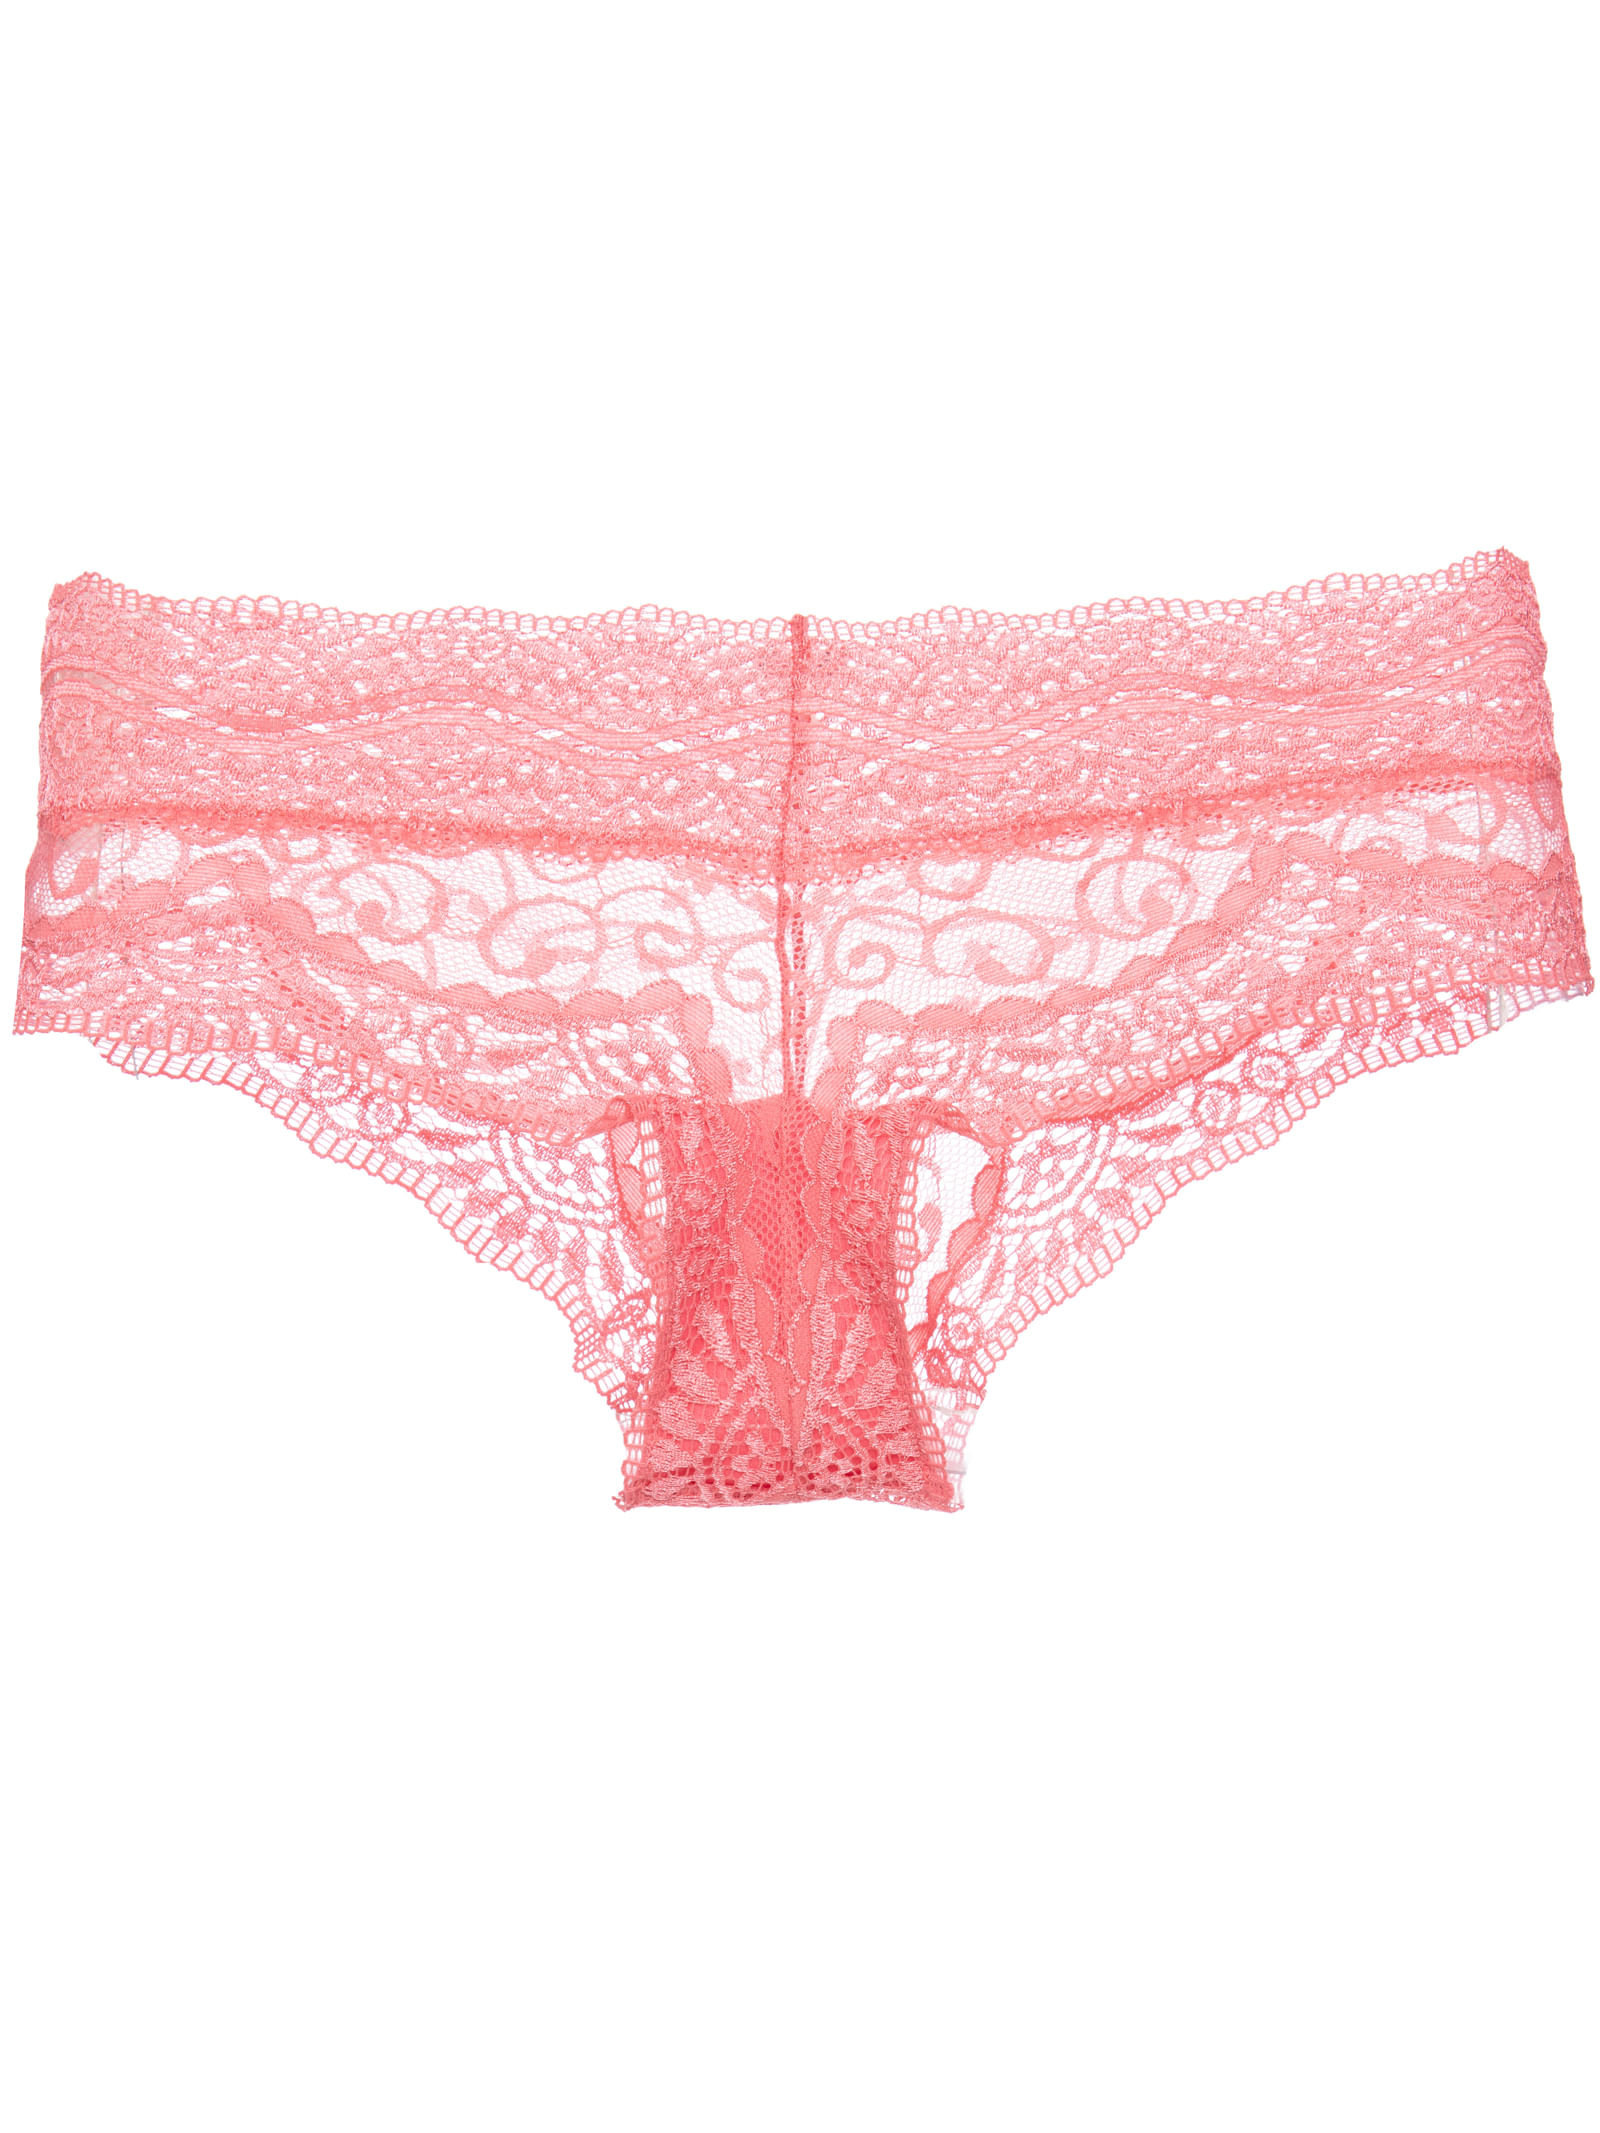 20090063_322_1-CALCINHA-BOYSHORT-RENDA-LOVE-LACE